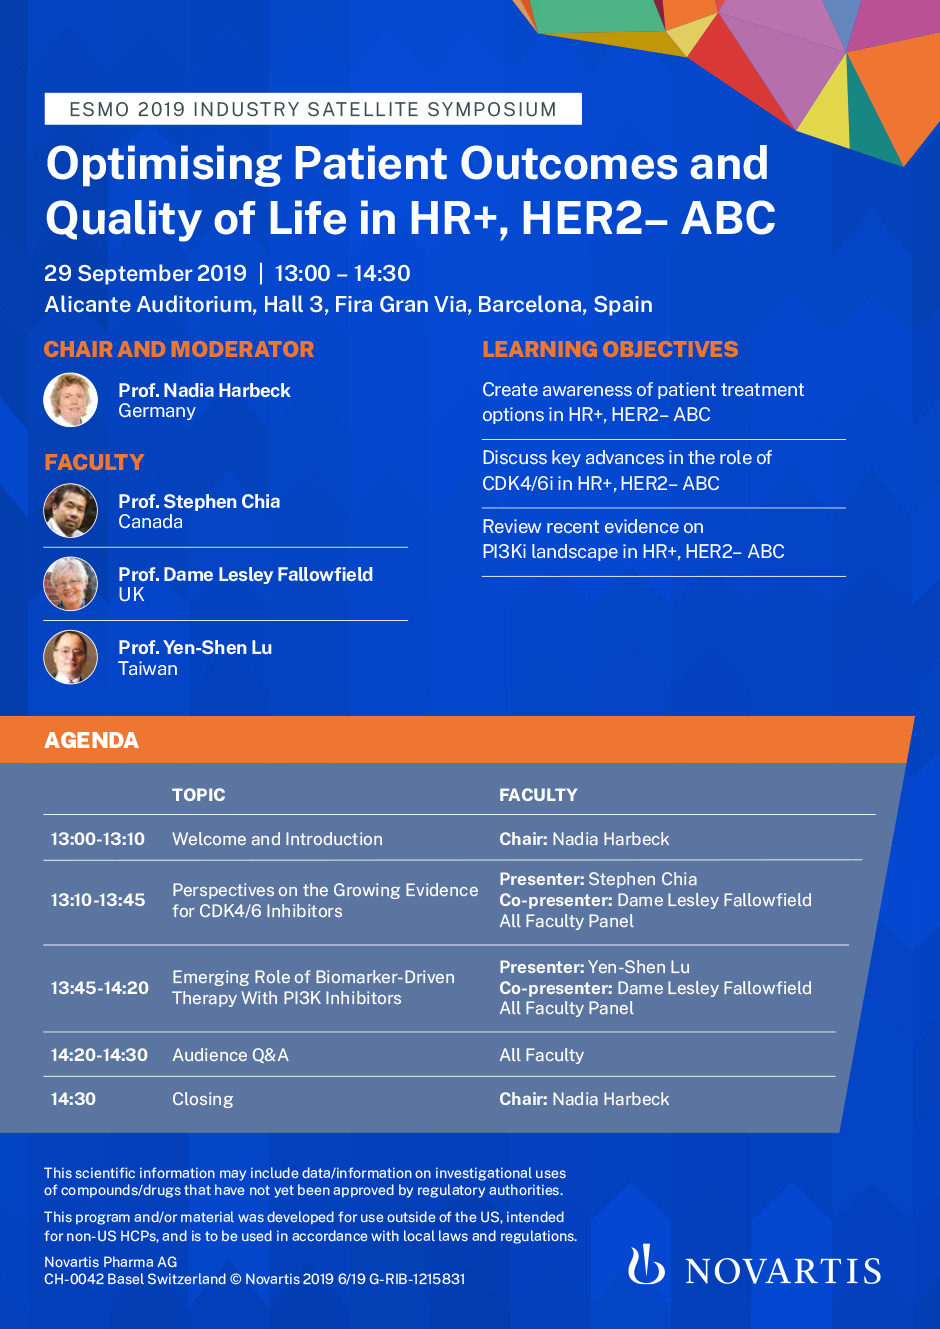 32-Optimising-Patient-Outcomes-and-Quality-of-Life-in-HR--HER2-ABC-MERCK-PFIZER